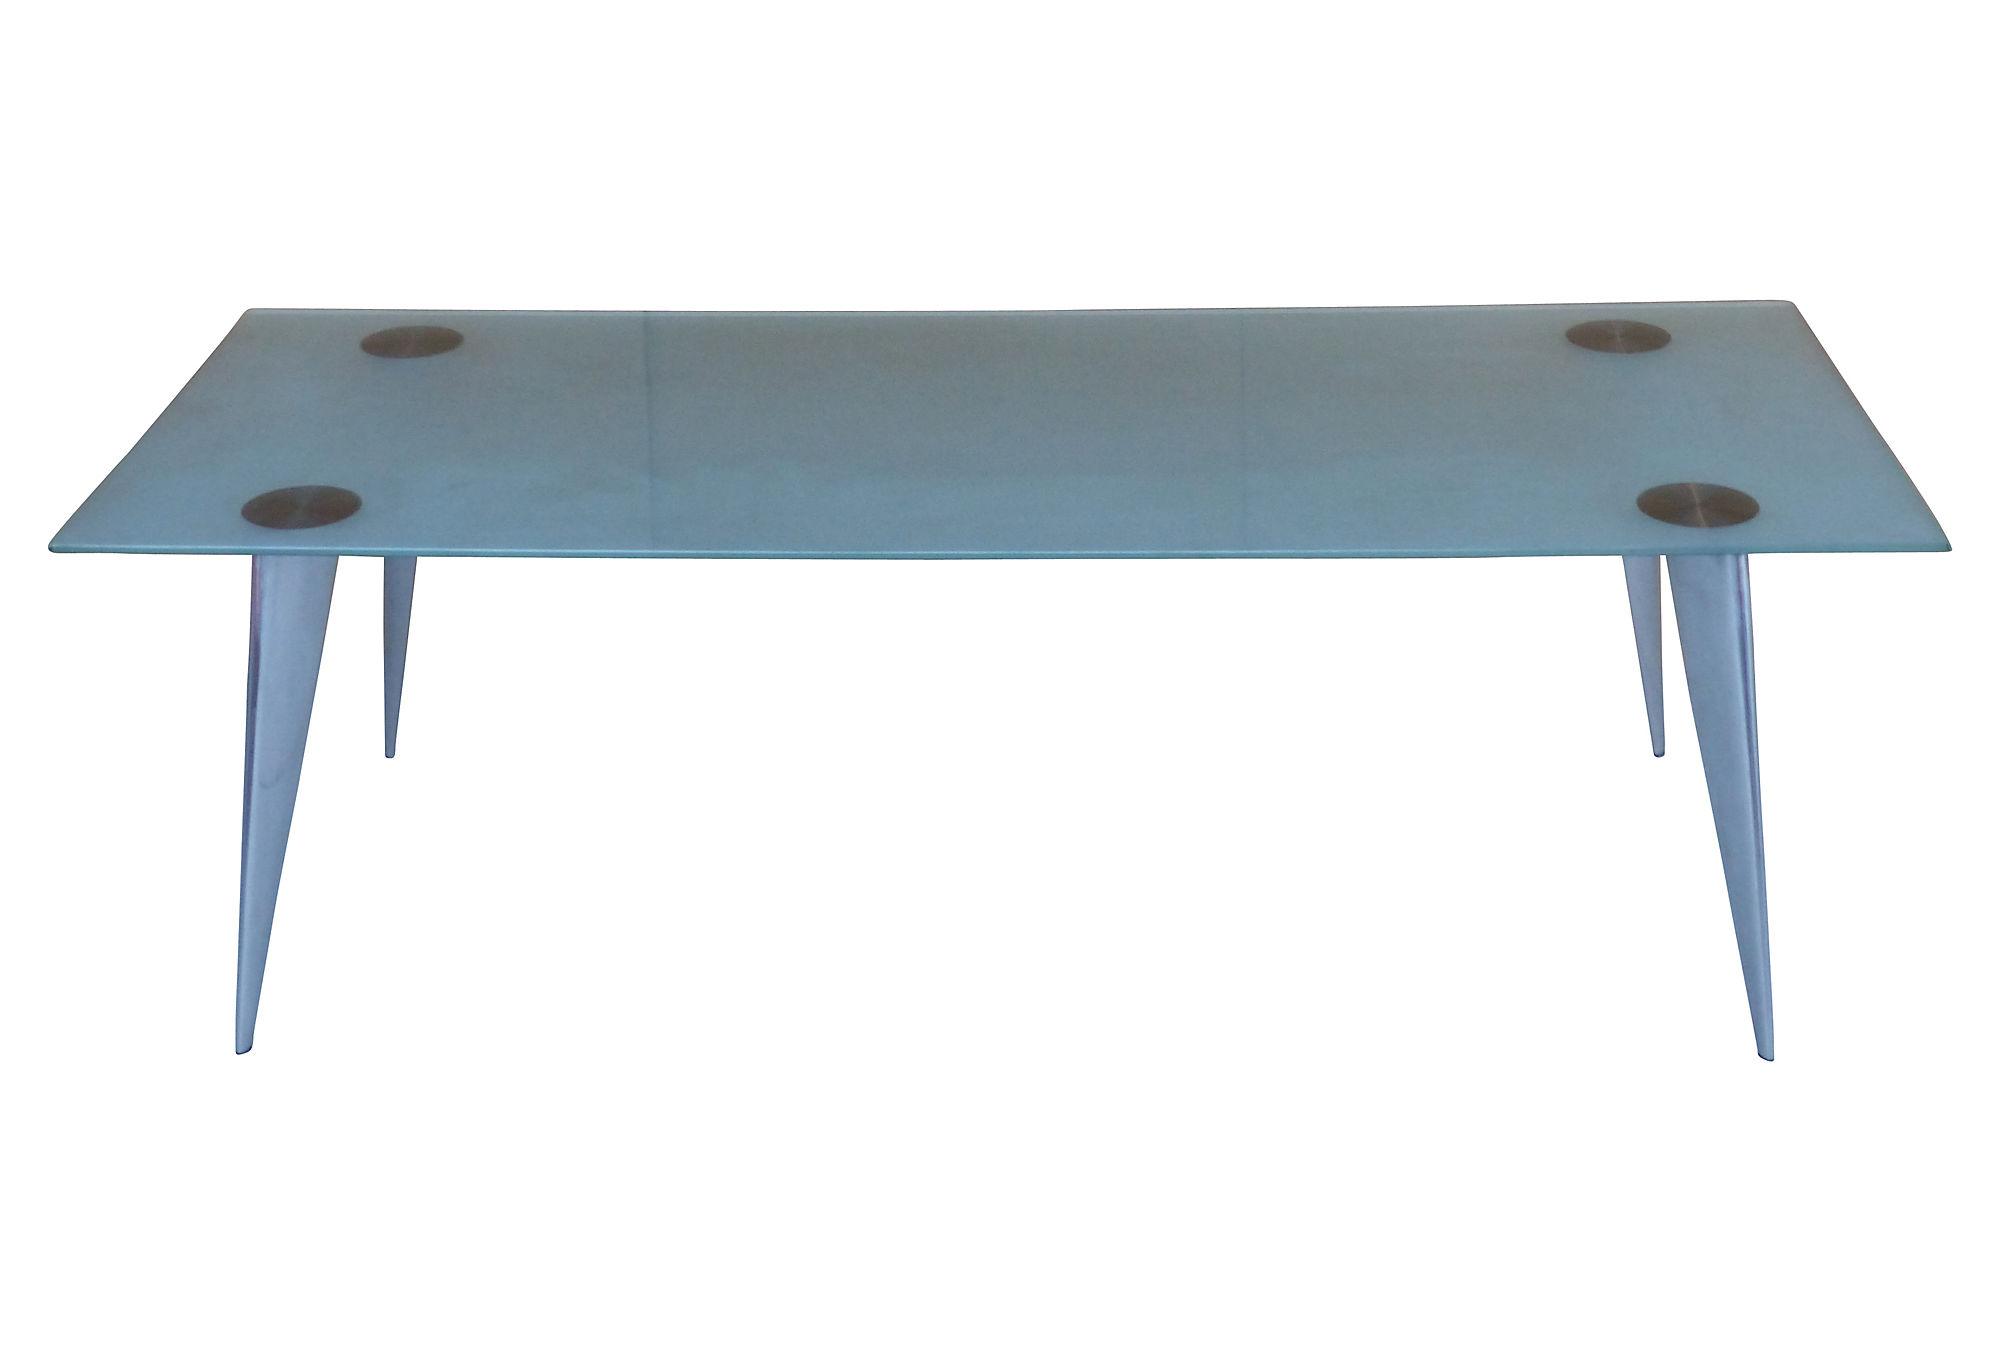 philippe starck s rie lang dining table for driade aleph On philippe starck glass table